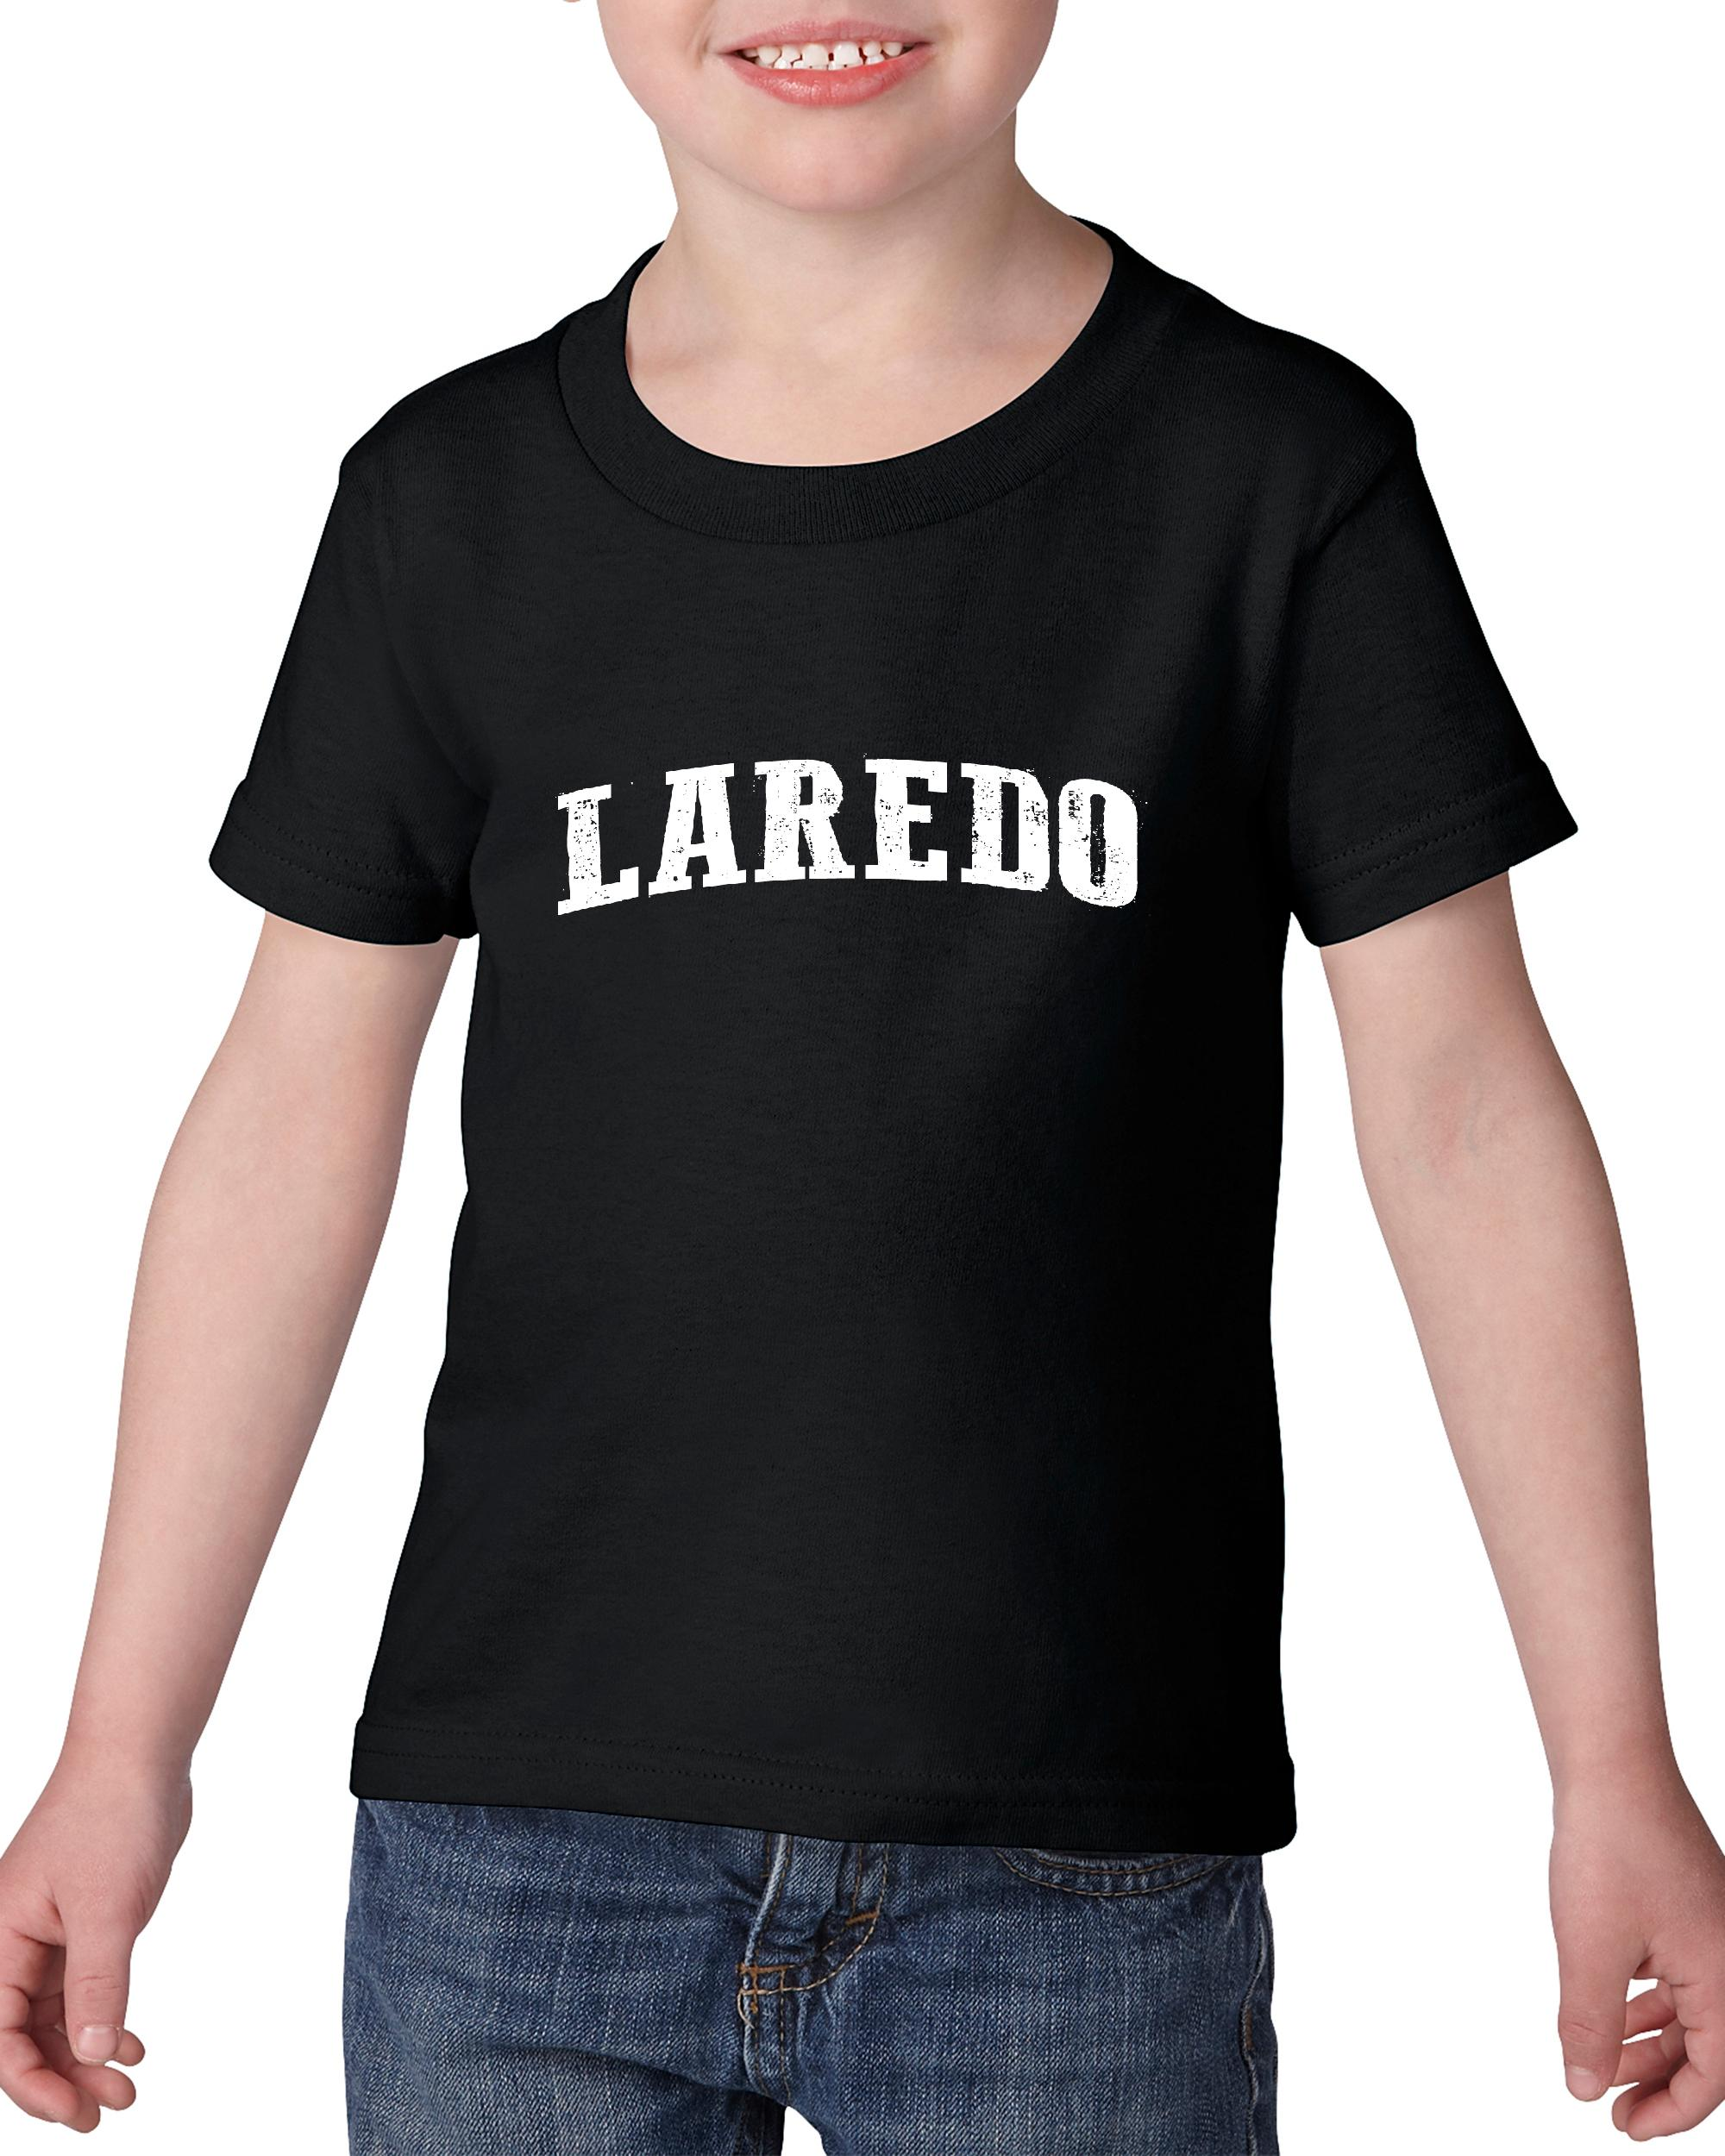 Artix Laredo TX Texas Flag Houston Map Longhorns Bobcats Home Texas State University Heavy Cotton Toddler Kids T-Shirt Tee Clothing